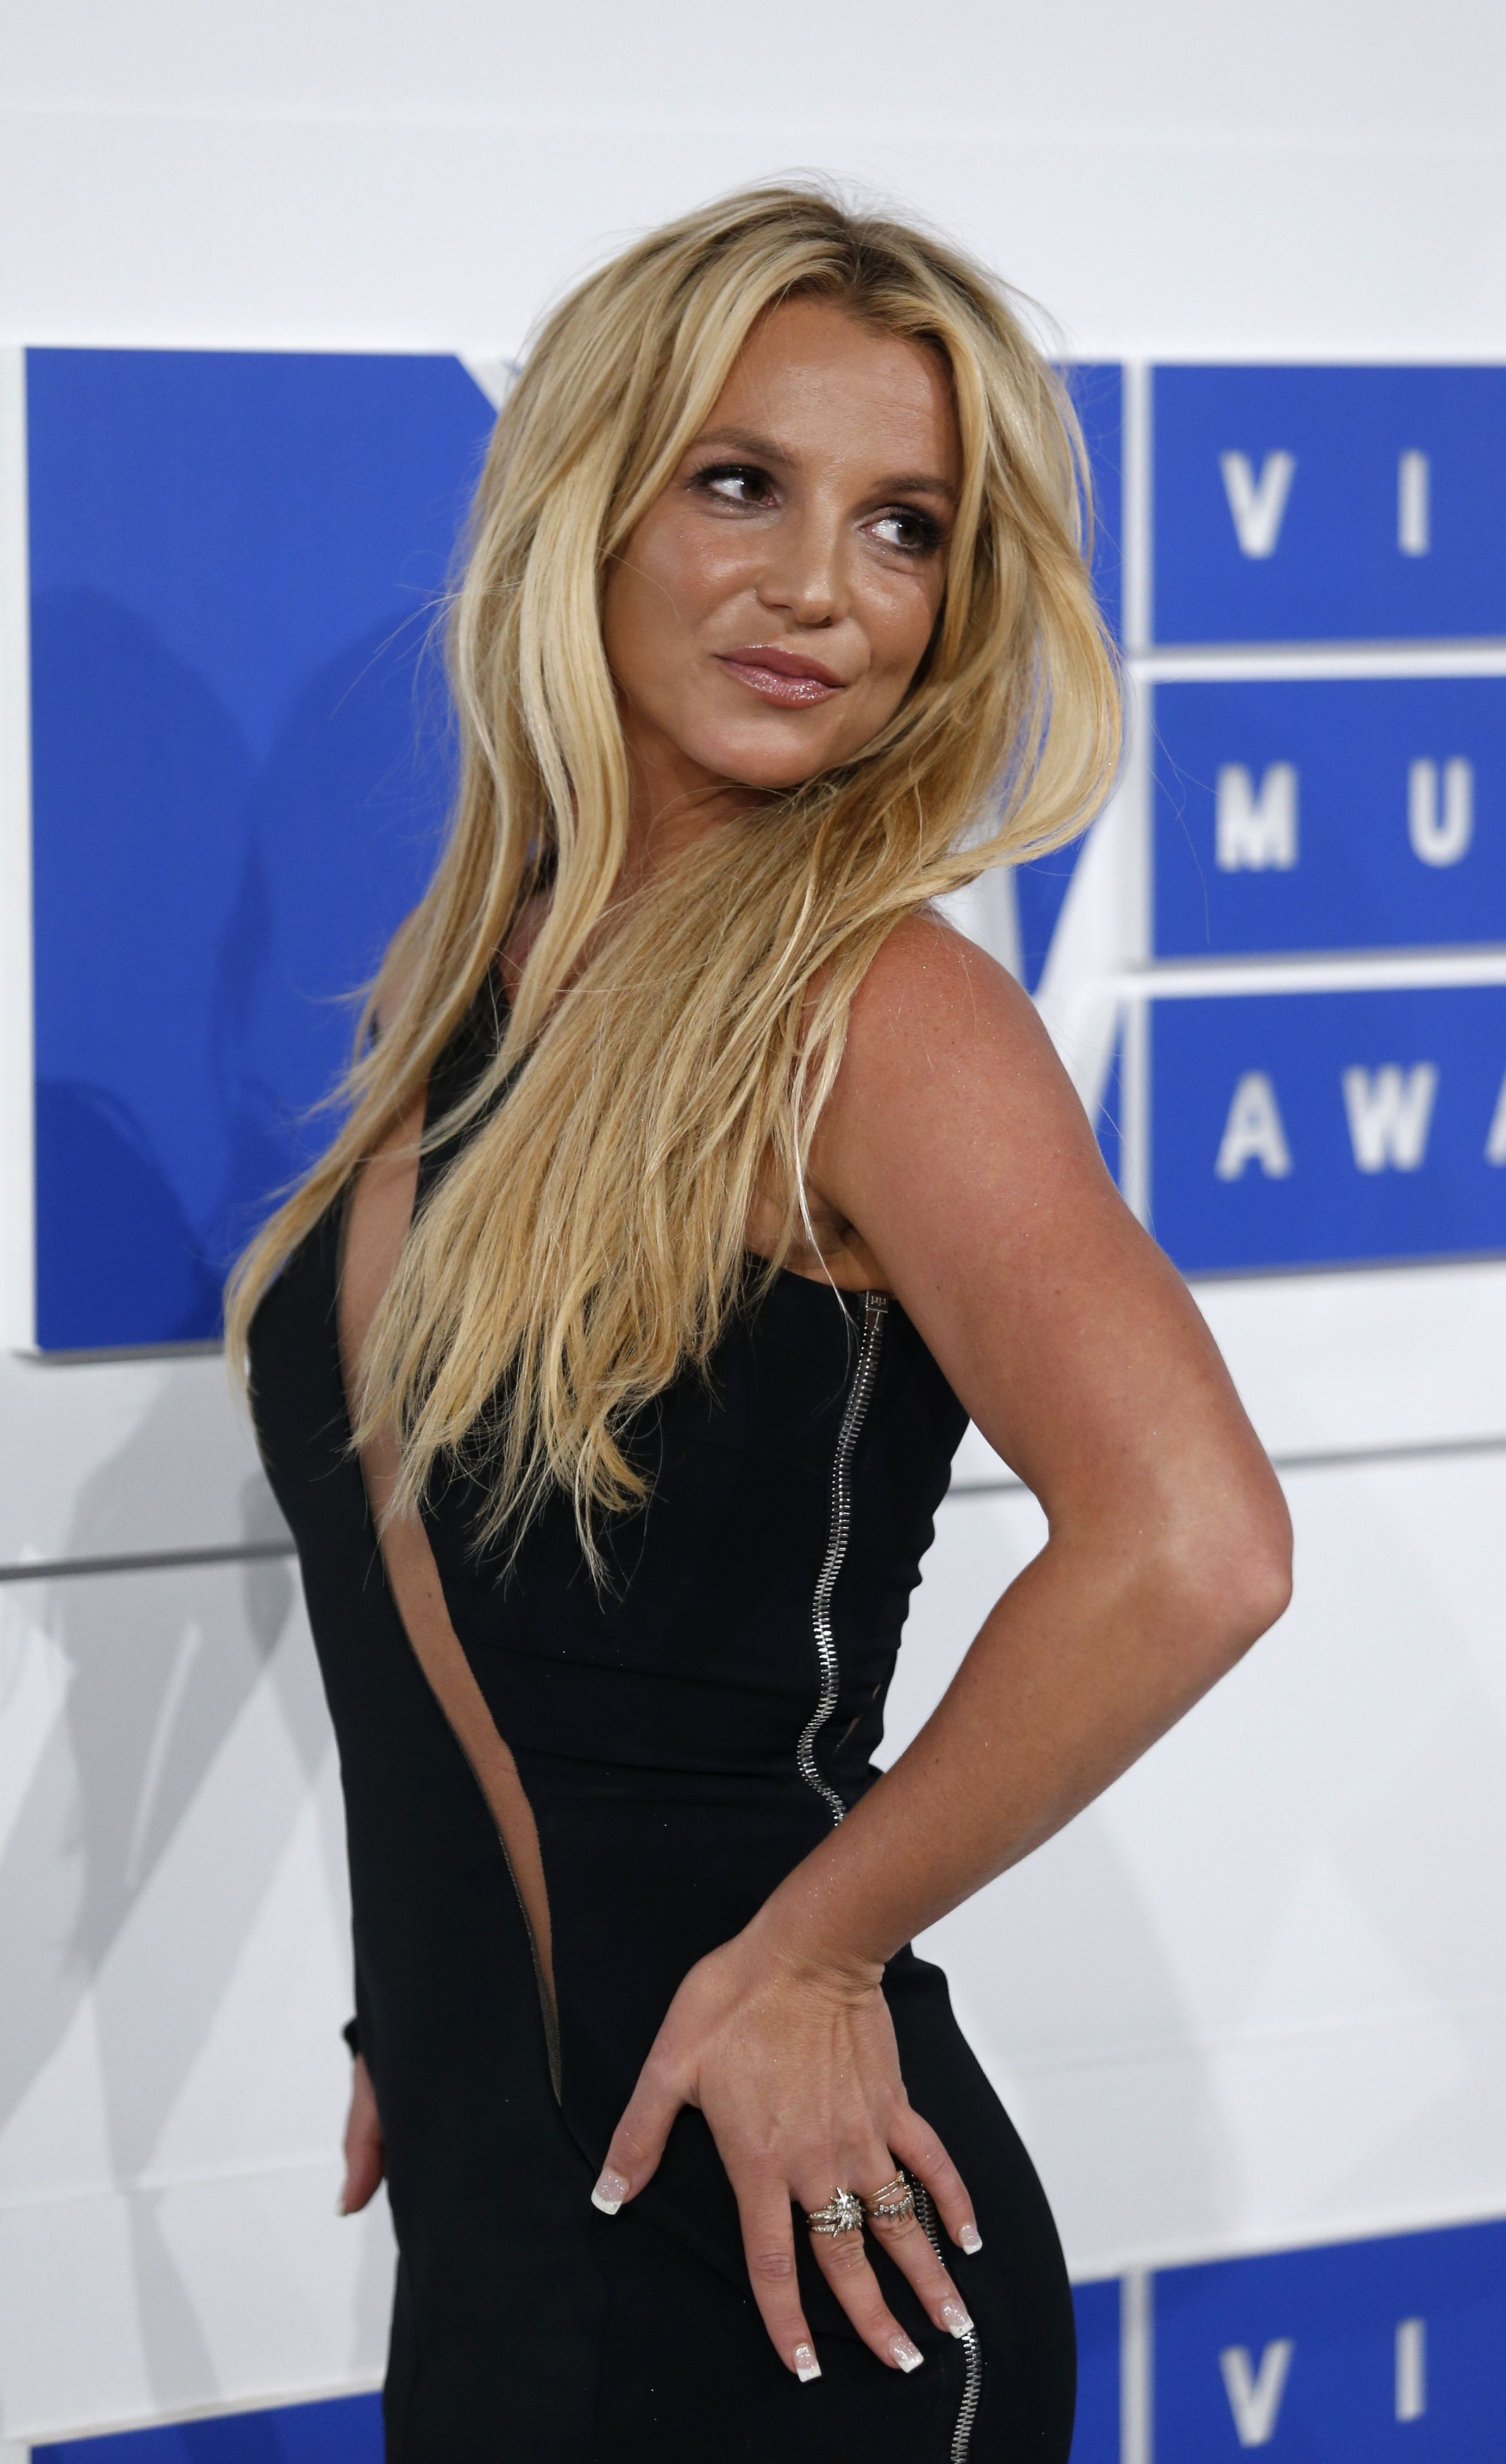 Singer Britney Spears arrives at the 2016 MTV Video Music Awards in New York, U.S., August 28, 2016.  REUTERS/Eduardo Munoz